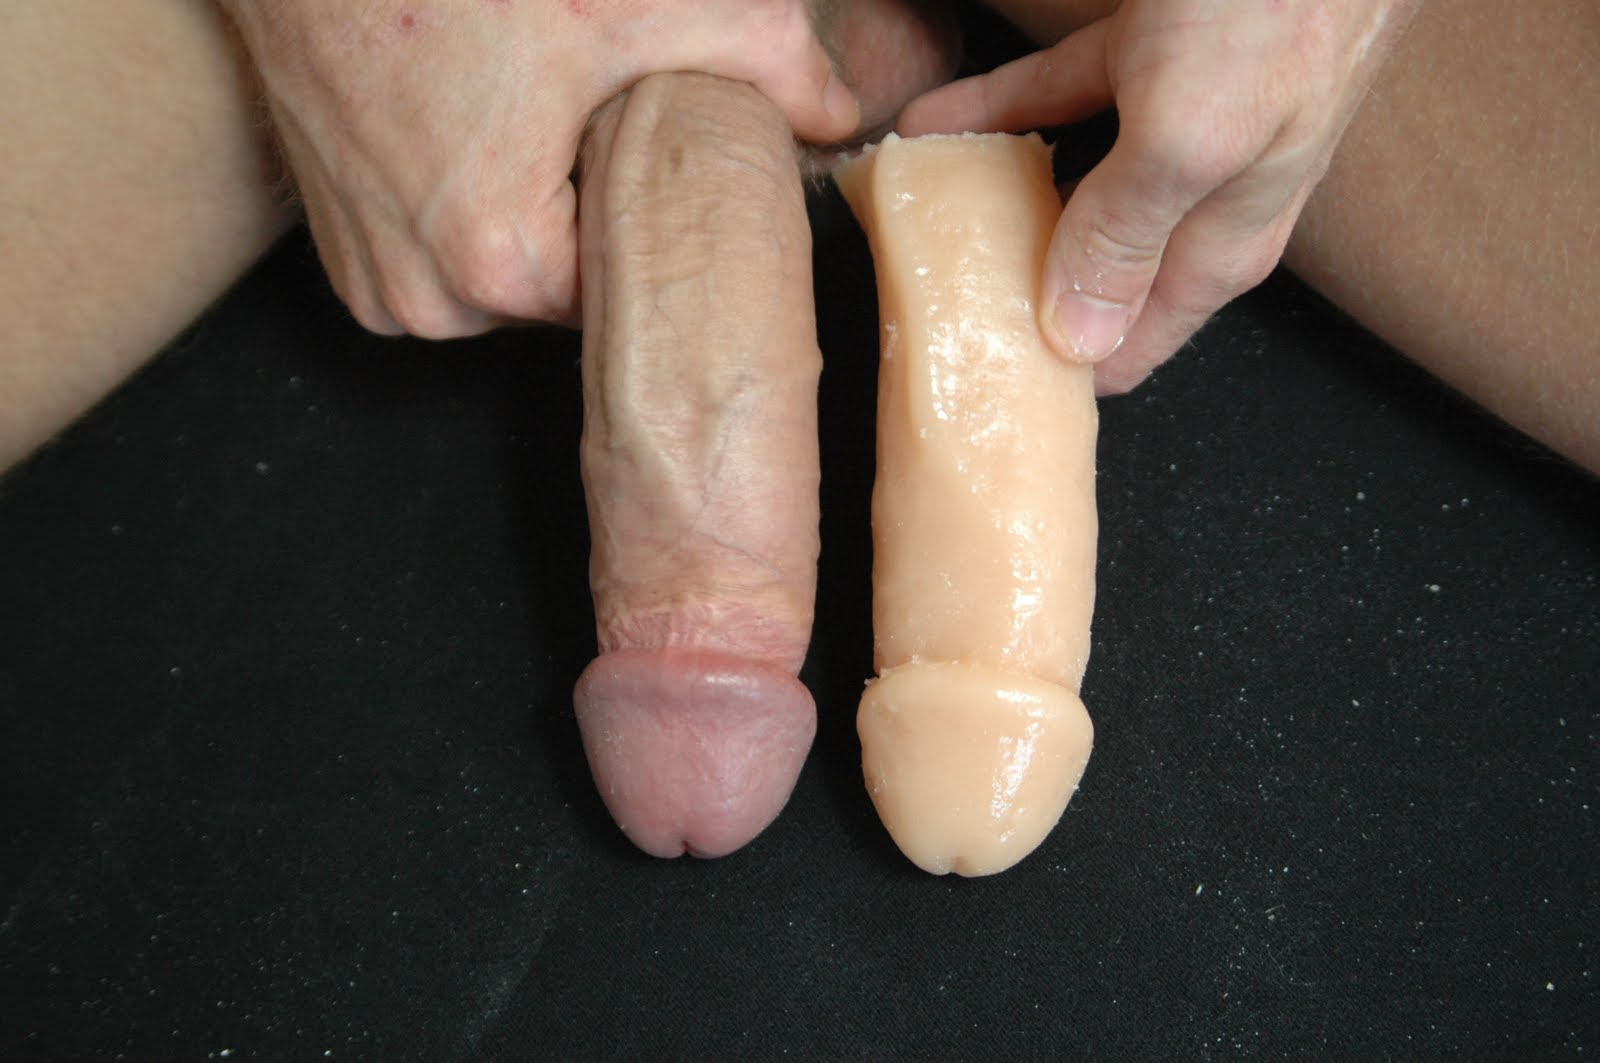 make your oun dildo